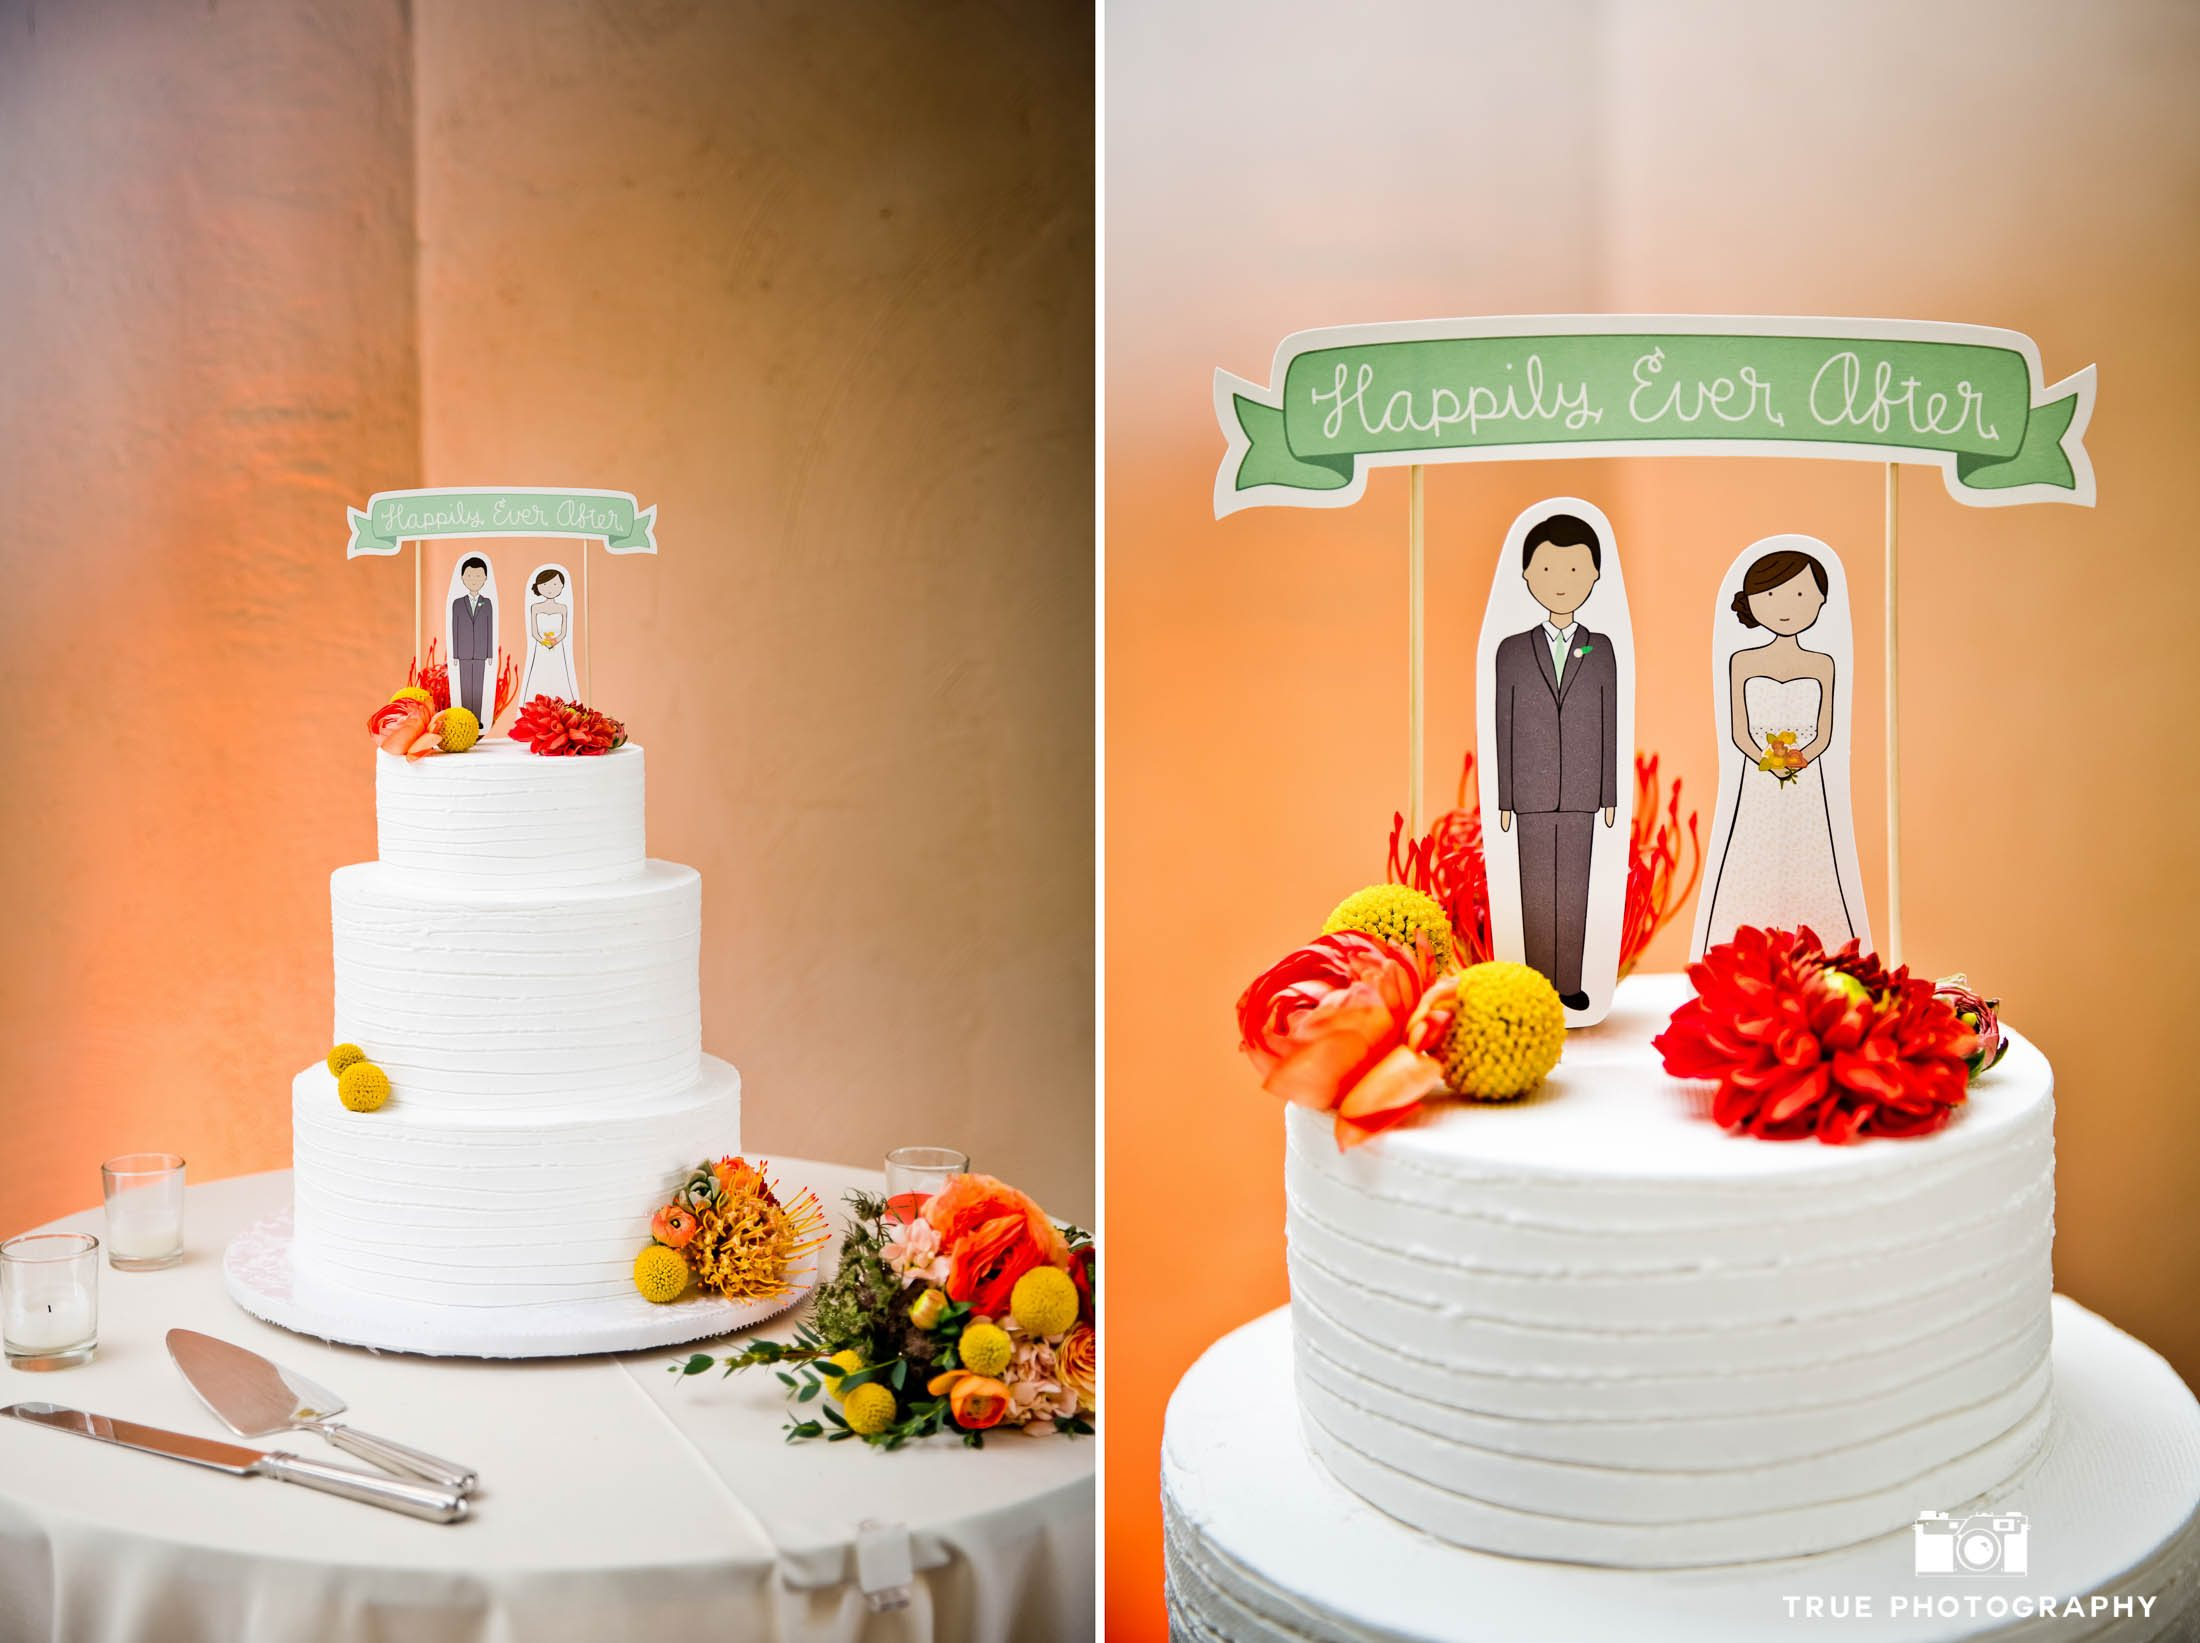 Modern, chic cake topper customized to look like wedding couple